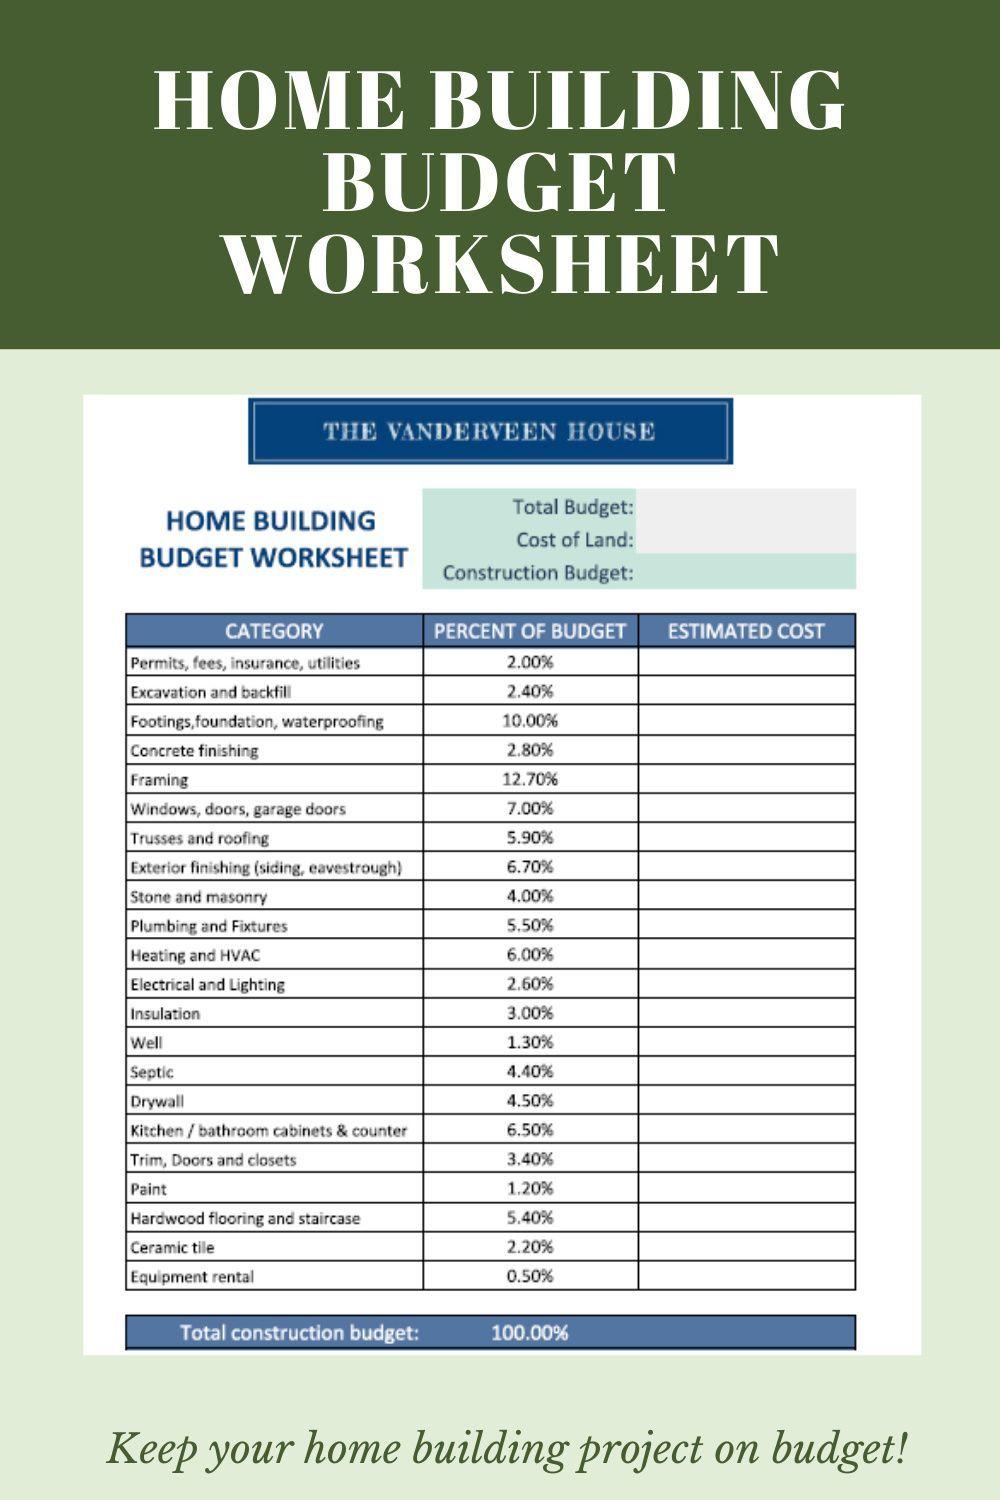 House Construction Schedule And Budget Worksheet Home Construction Budgeting Worksheets Budgeting New home construction budget worksheet